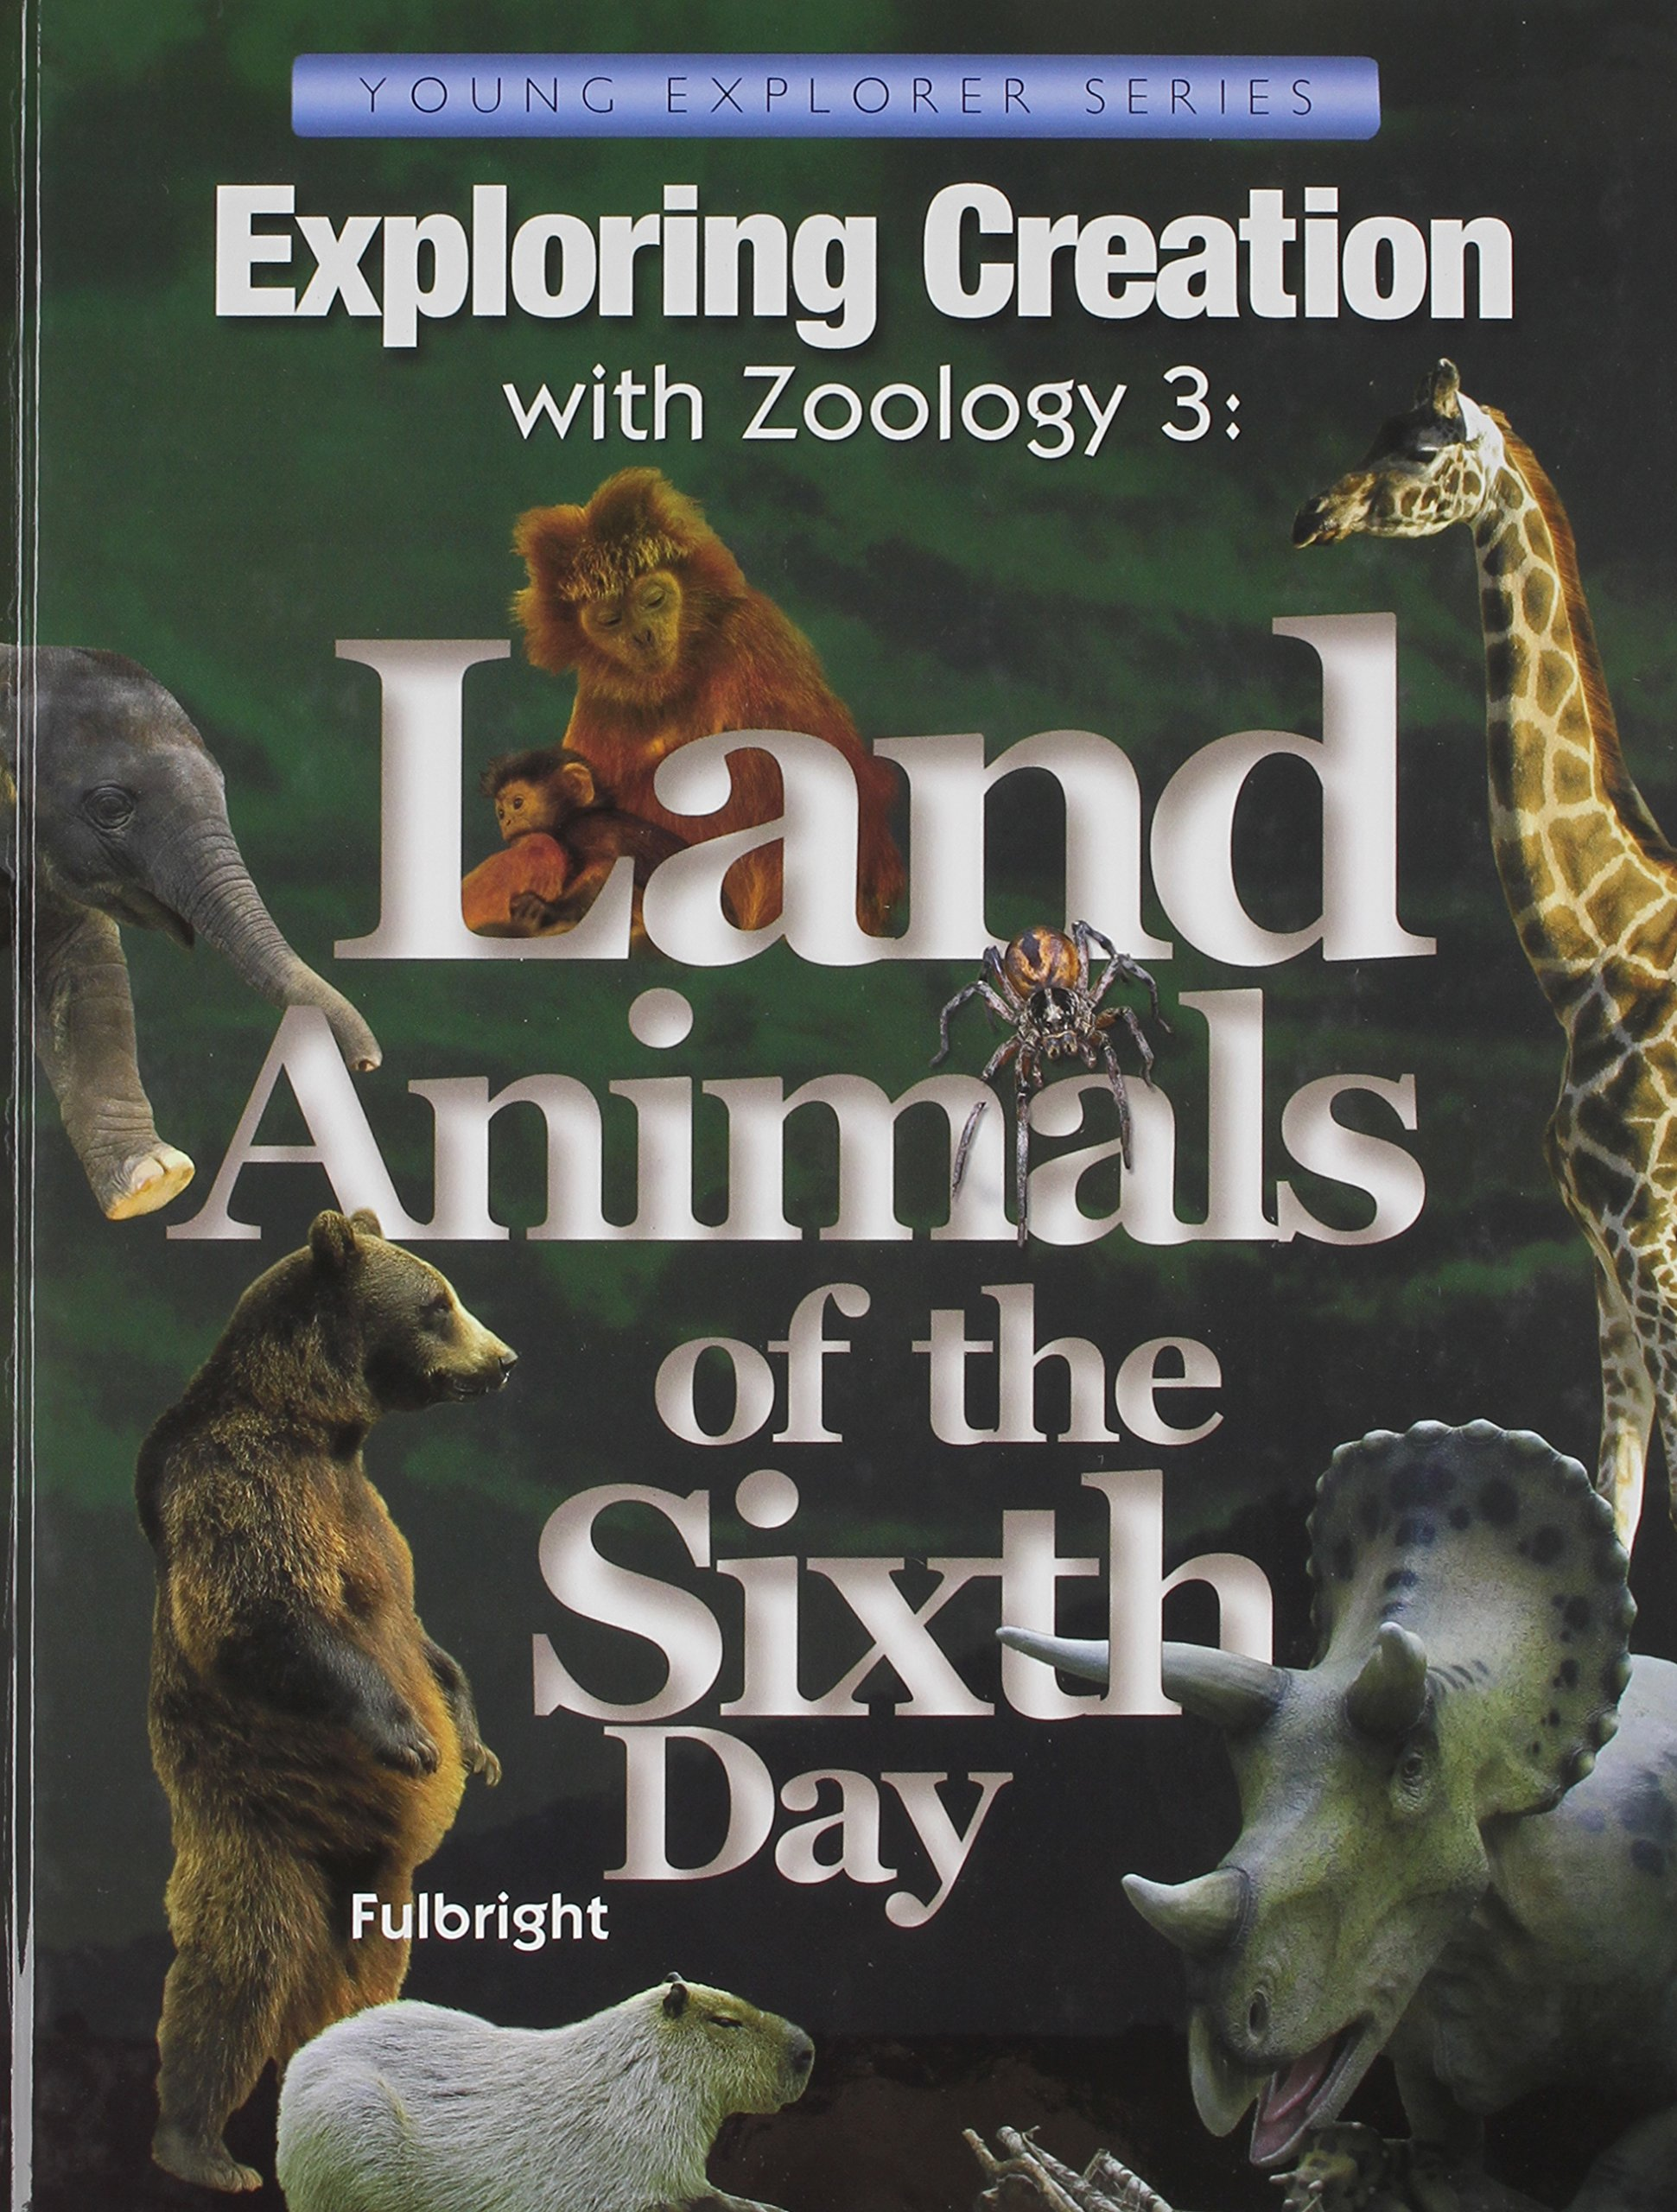 Exploring Creation with Zoology 3: Land Animals of the Sixth Day ...